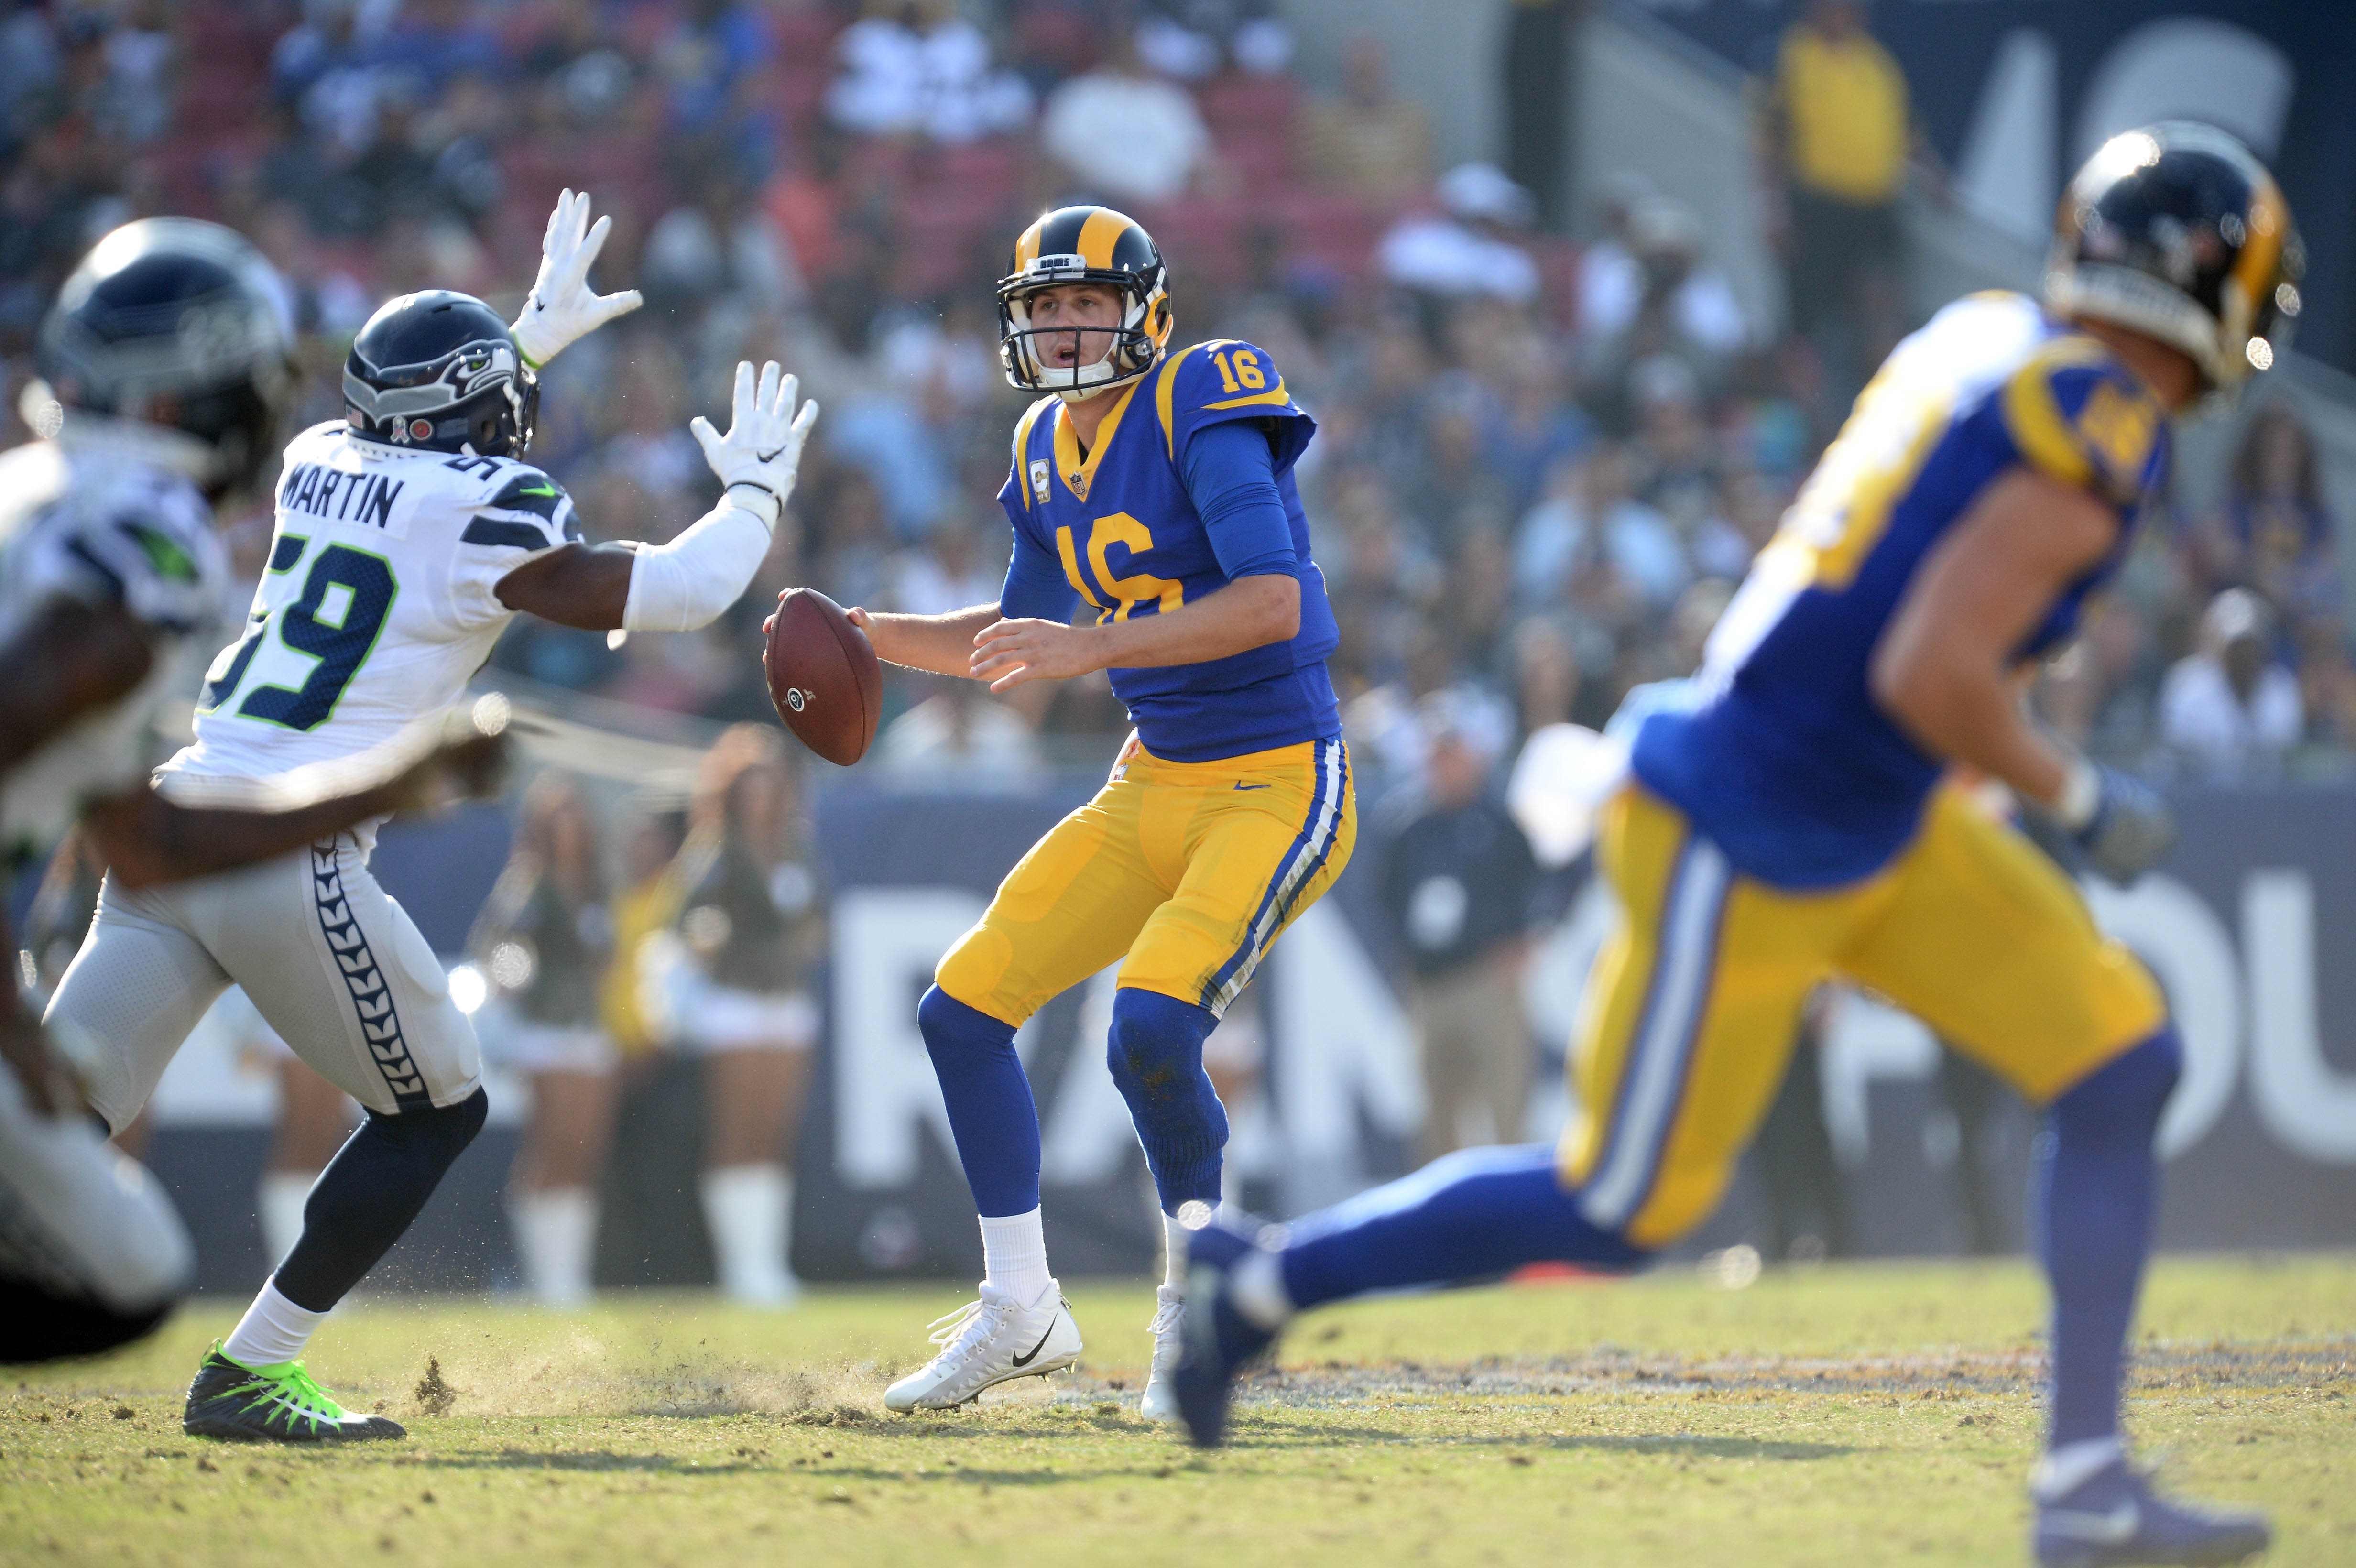 Los Angeles Rams QB Jared Goff drops back against the Seattle Seahawks, Nov. 11, 2018.